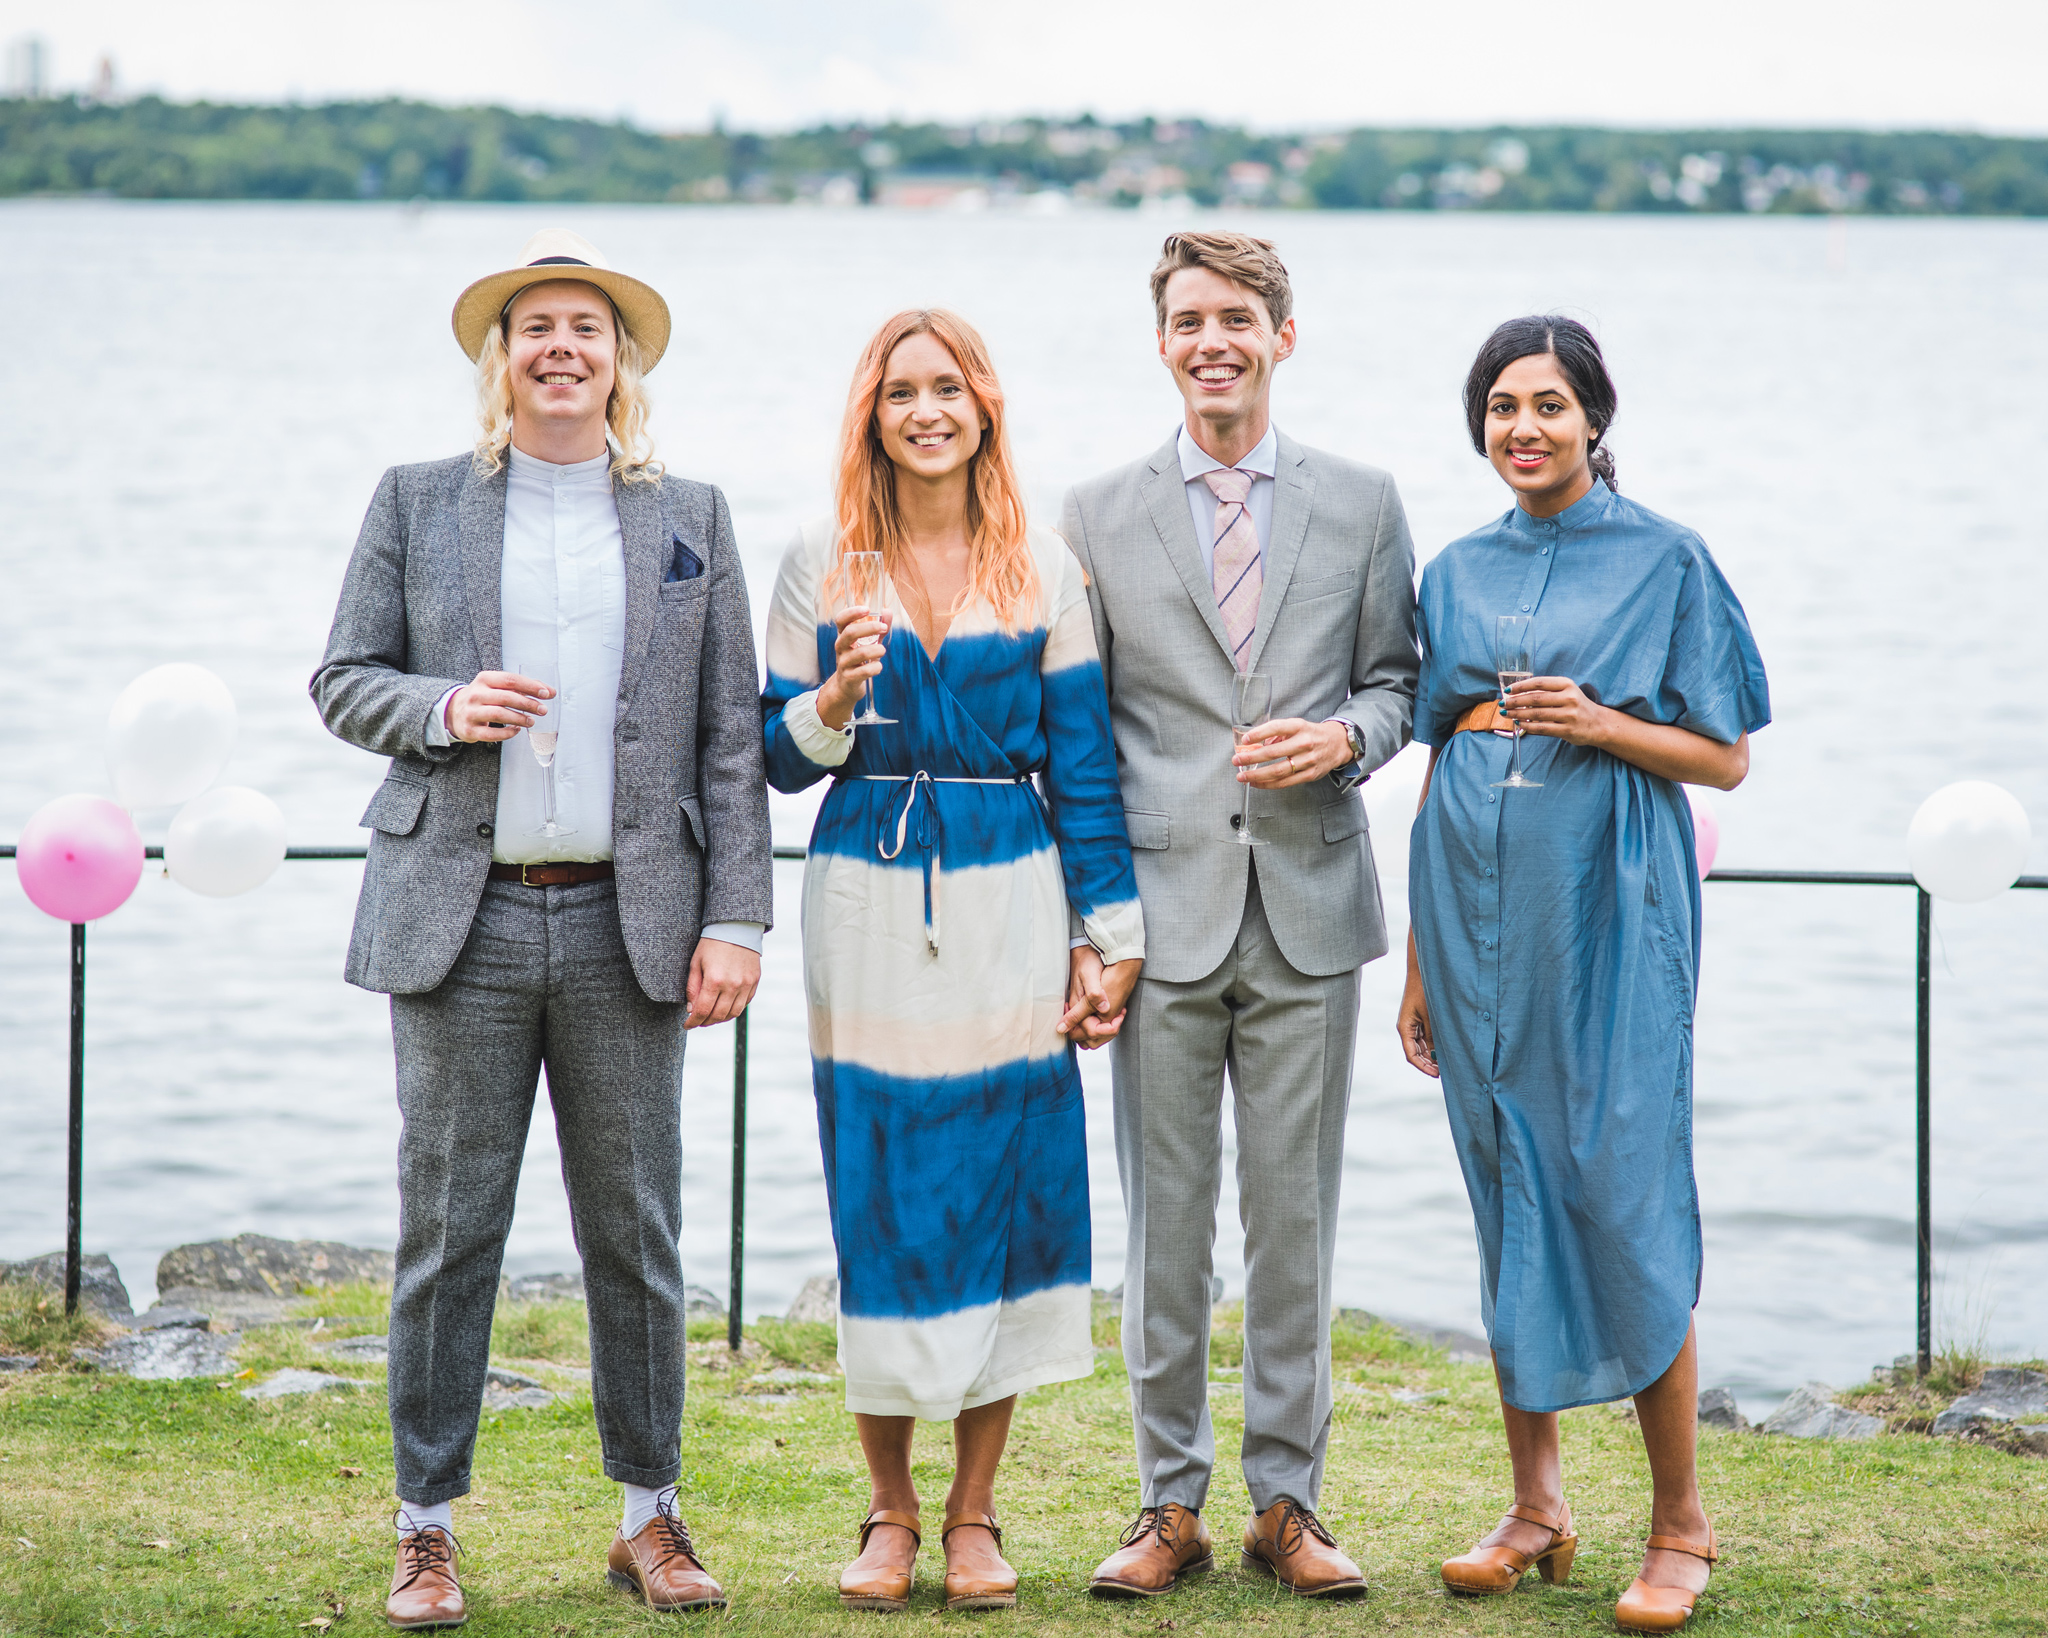 an elopement wedding group photo